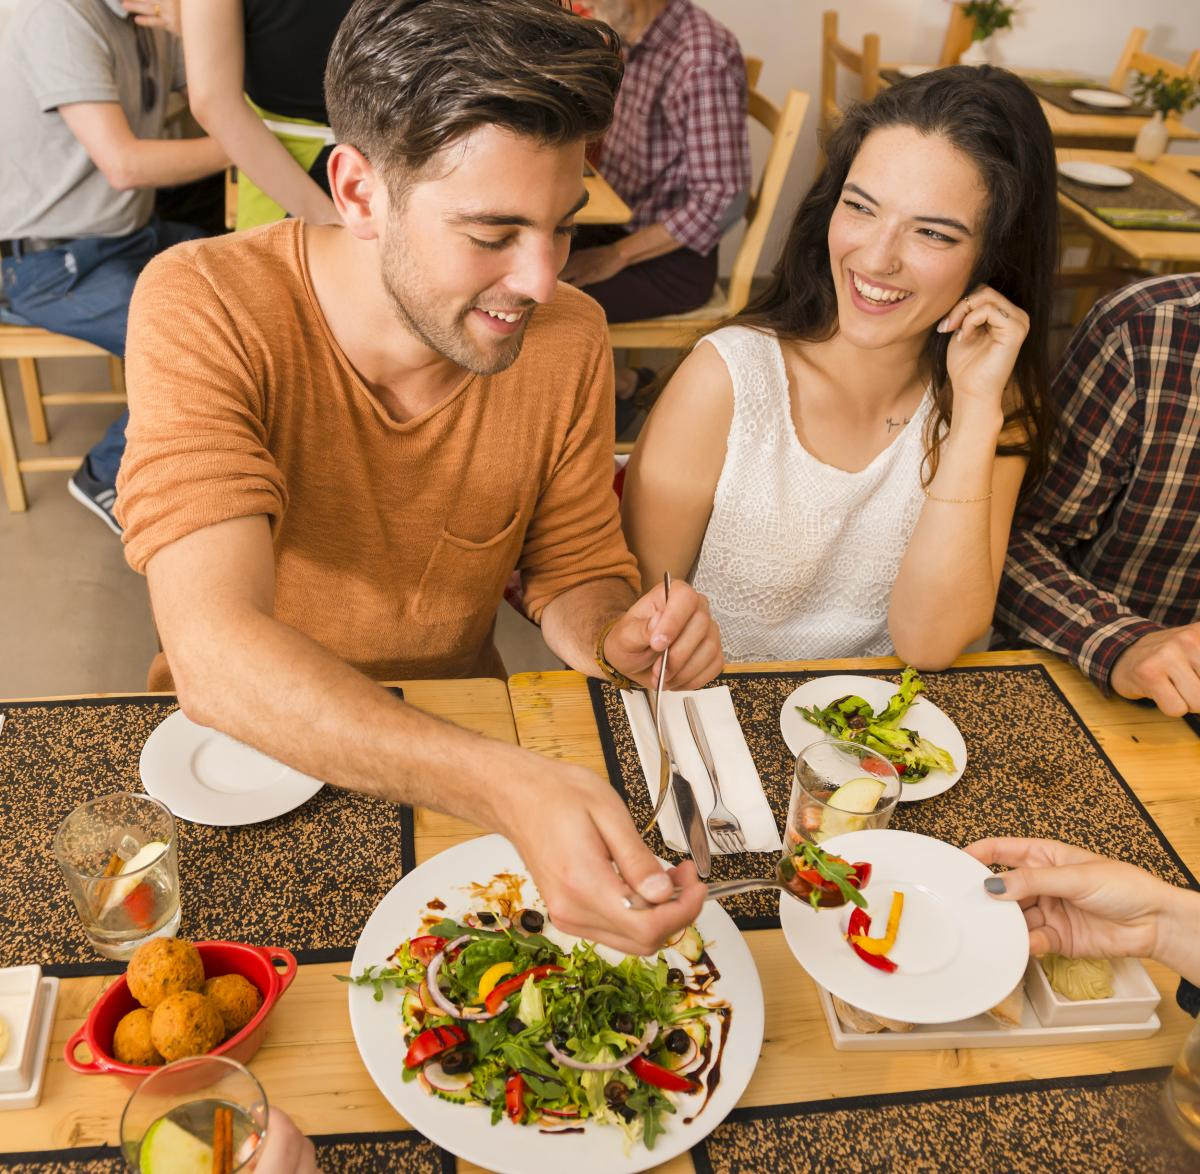 Laughing people sharing salad at a table